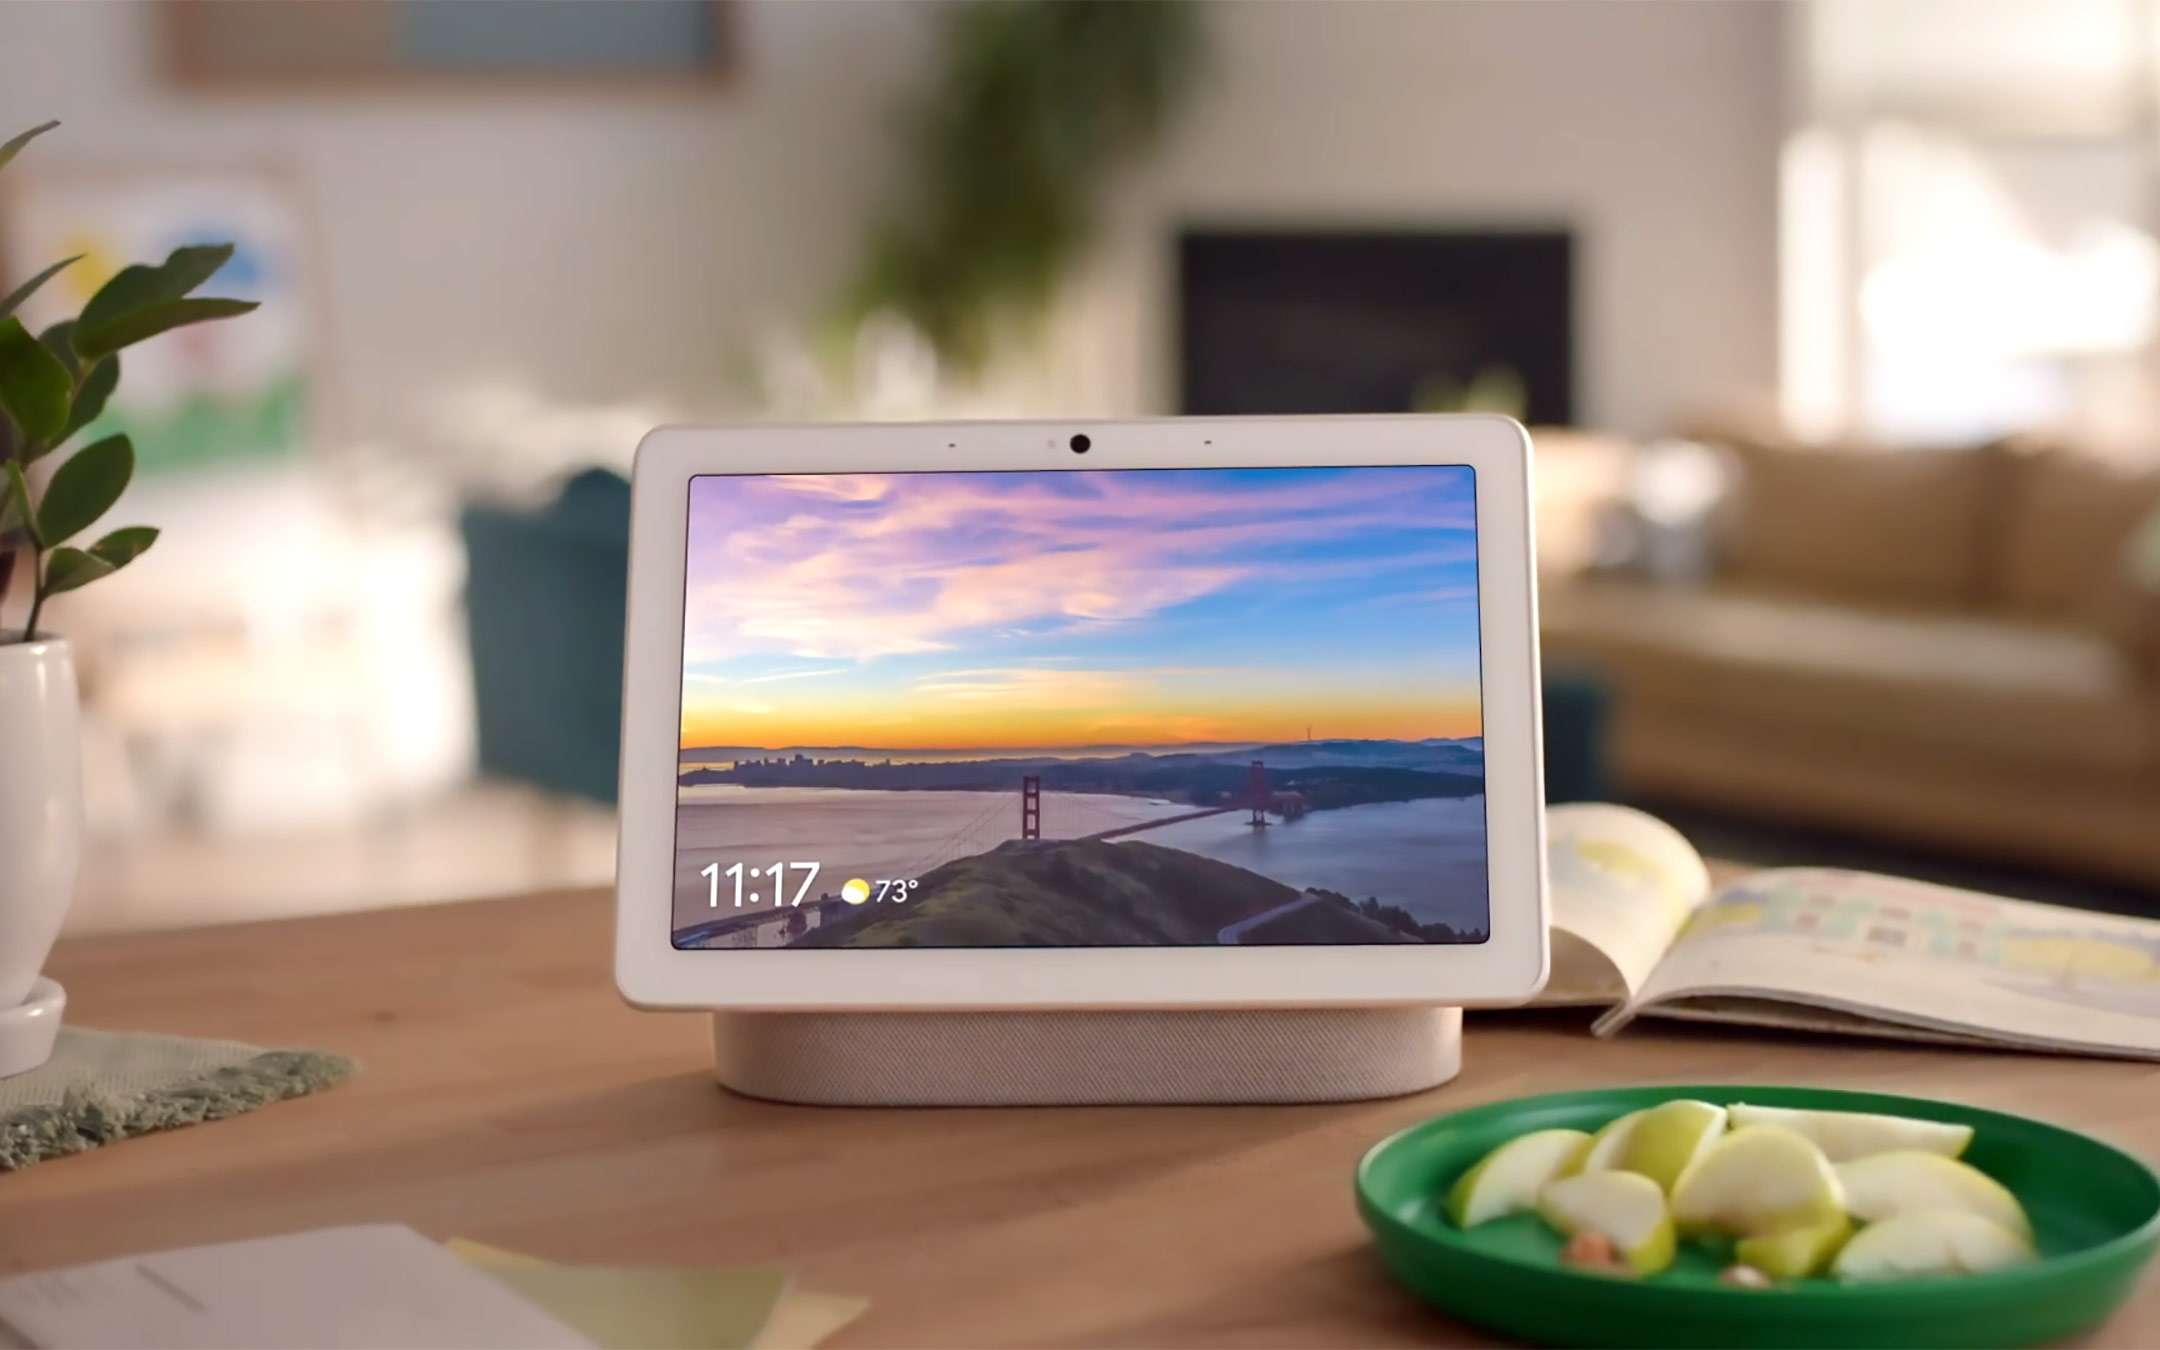 Google brings Zoom to the Nest Hub Max smart display